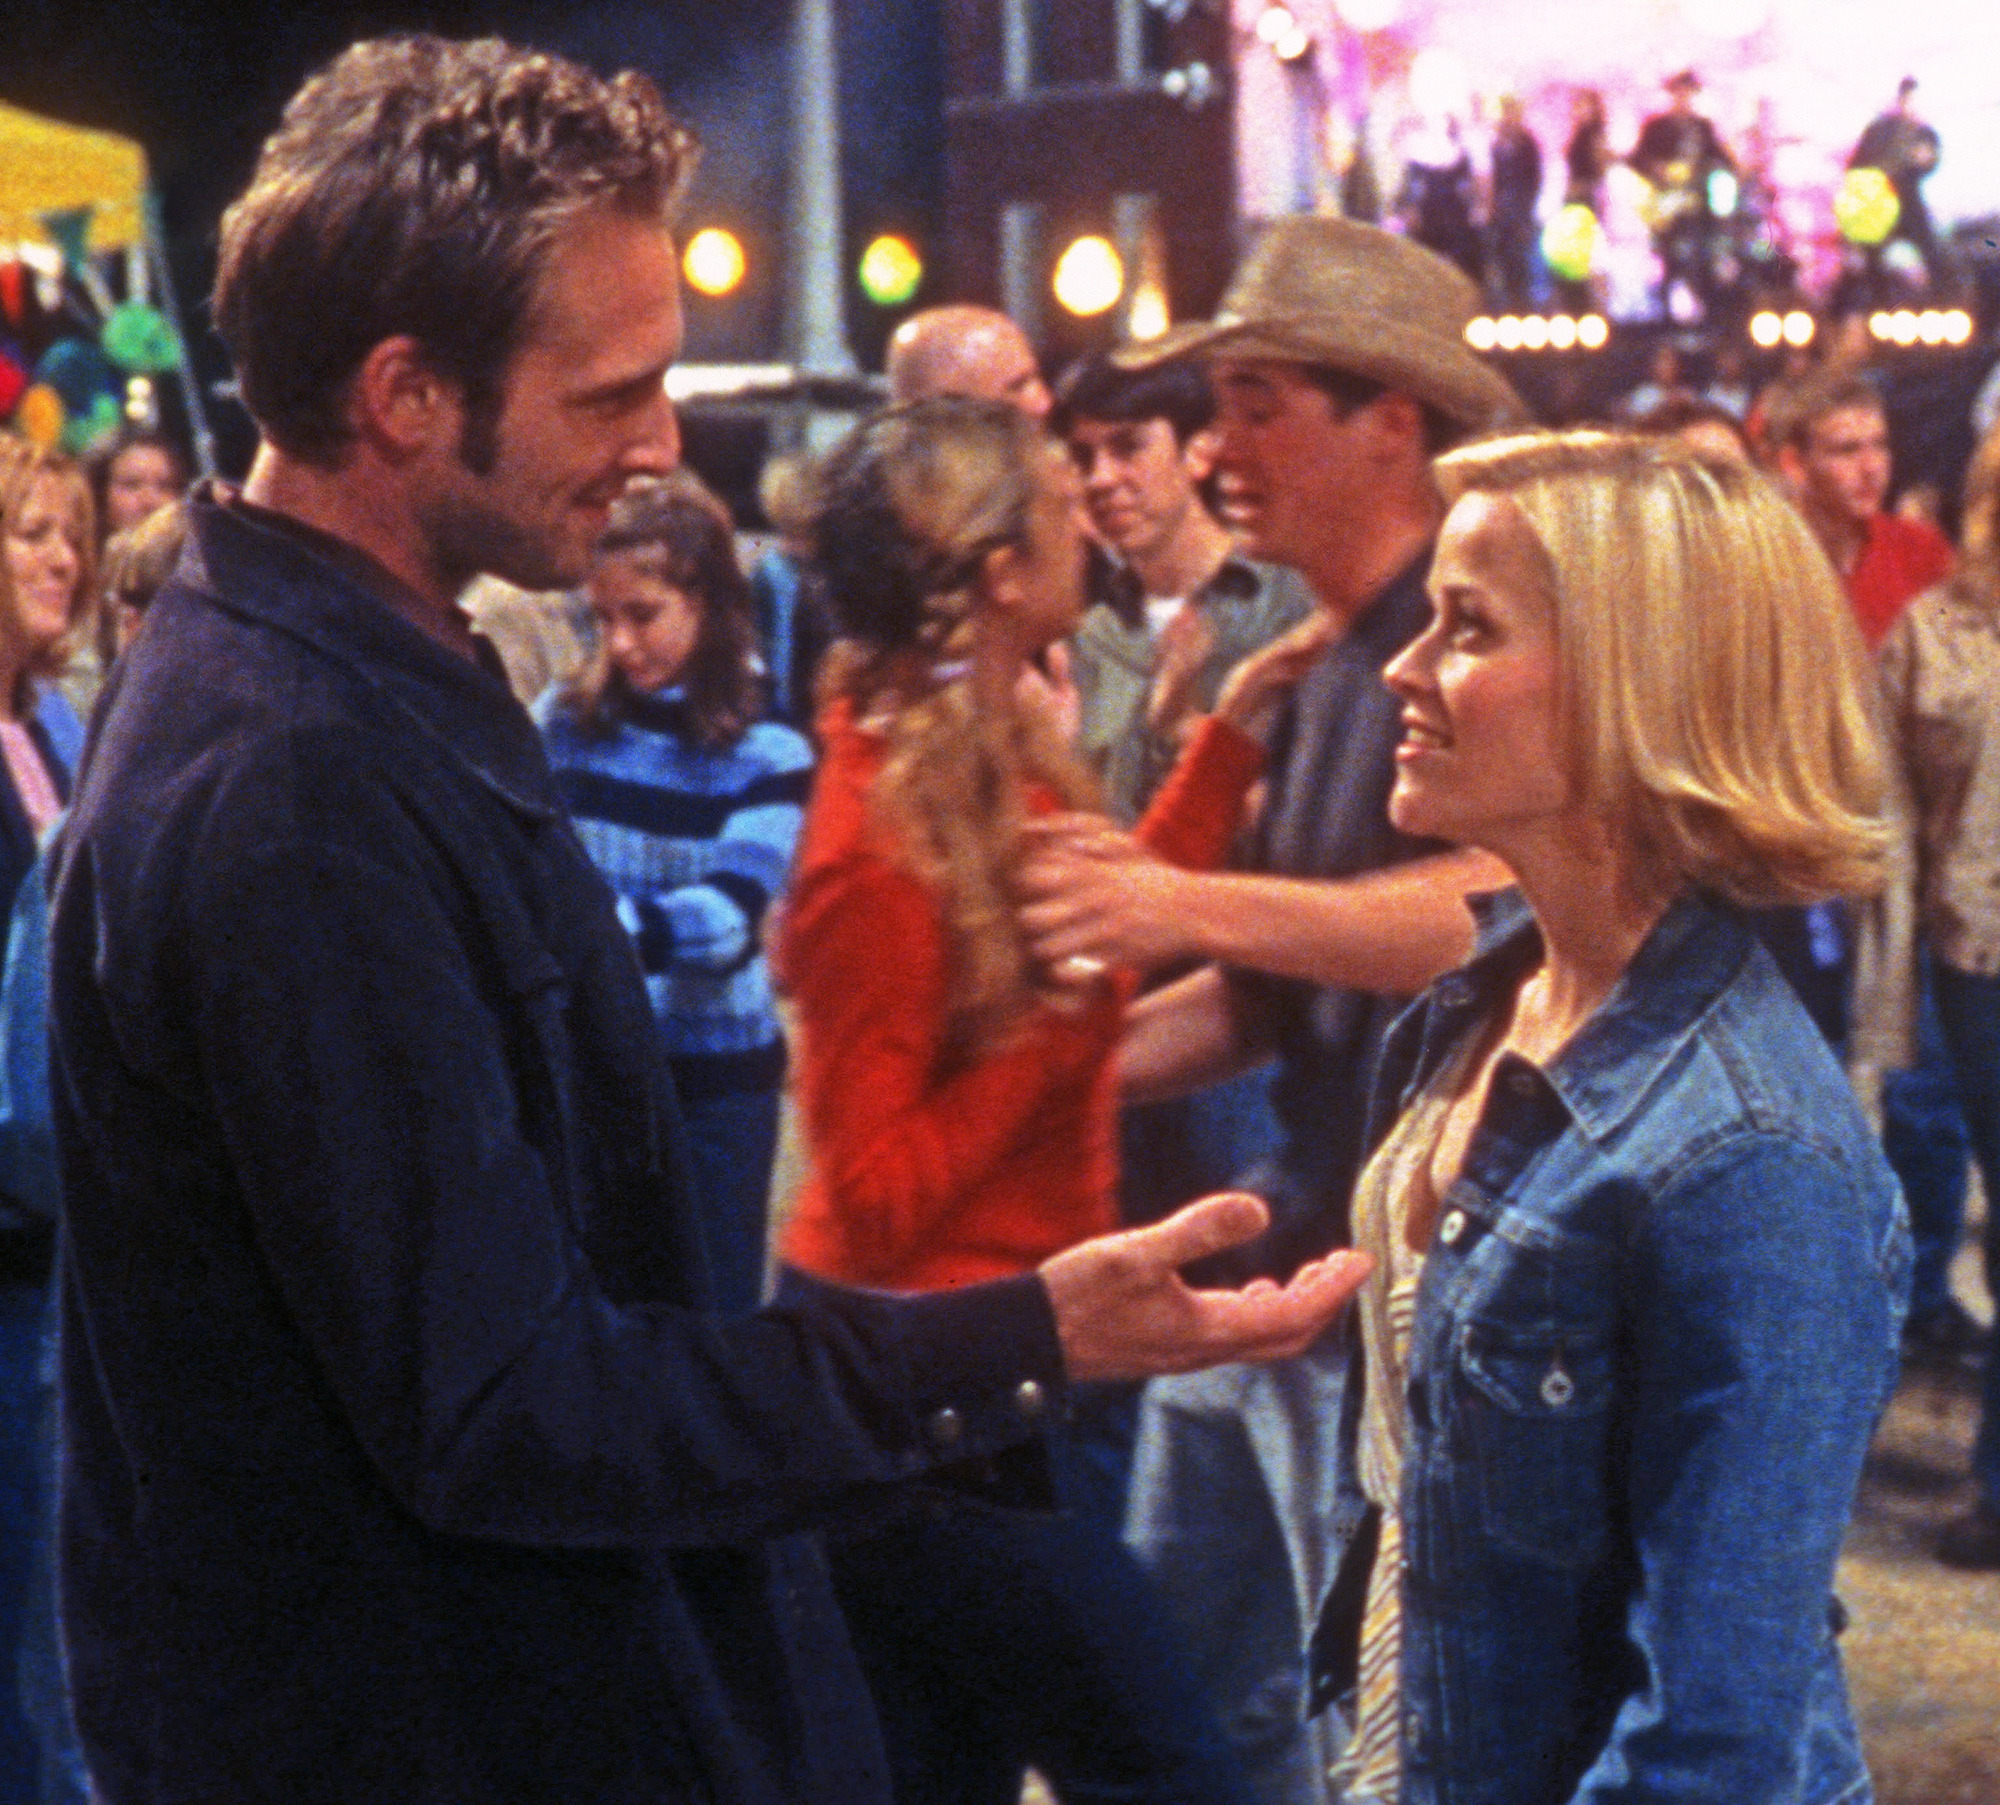 Josh Lucas and Reese Witherspoon in Sweet Home Alabama